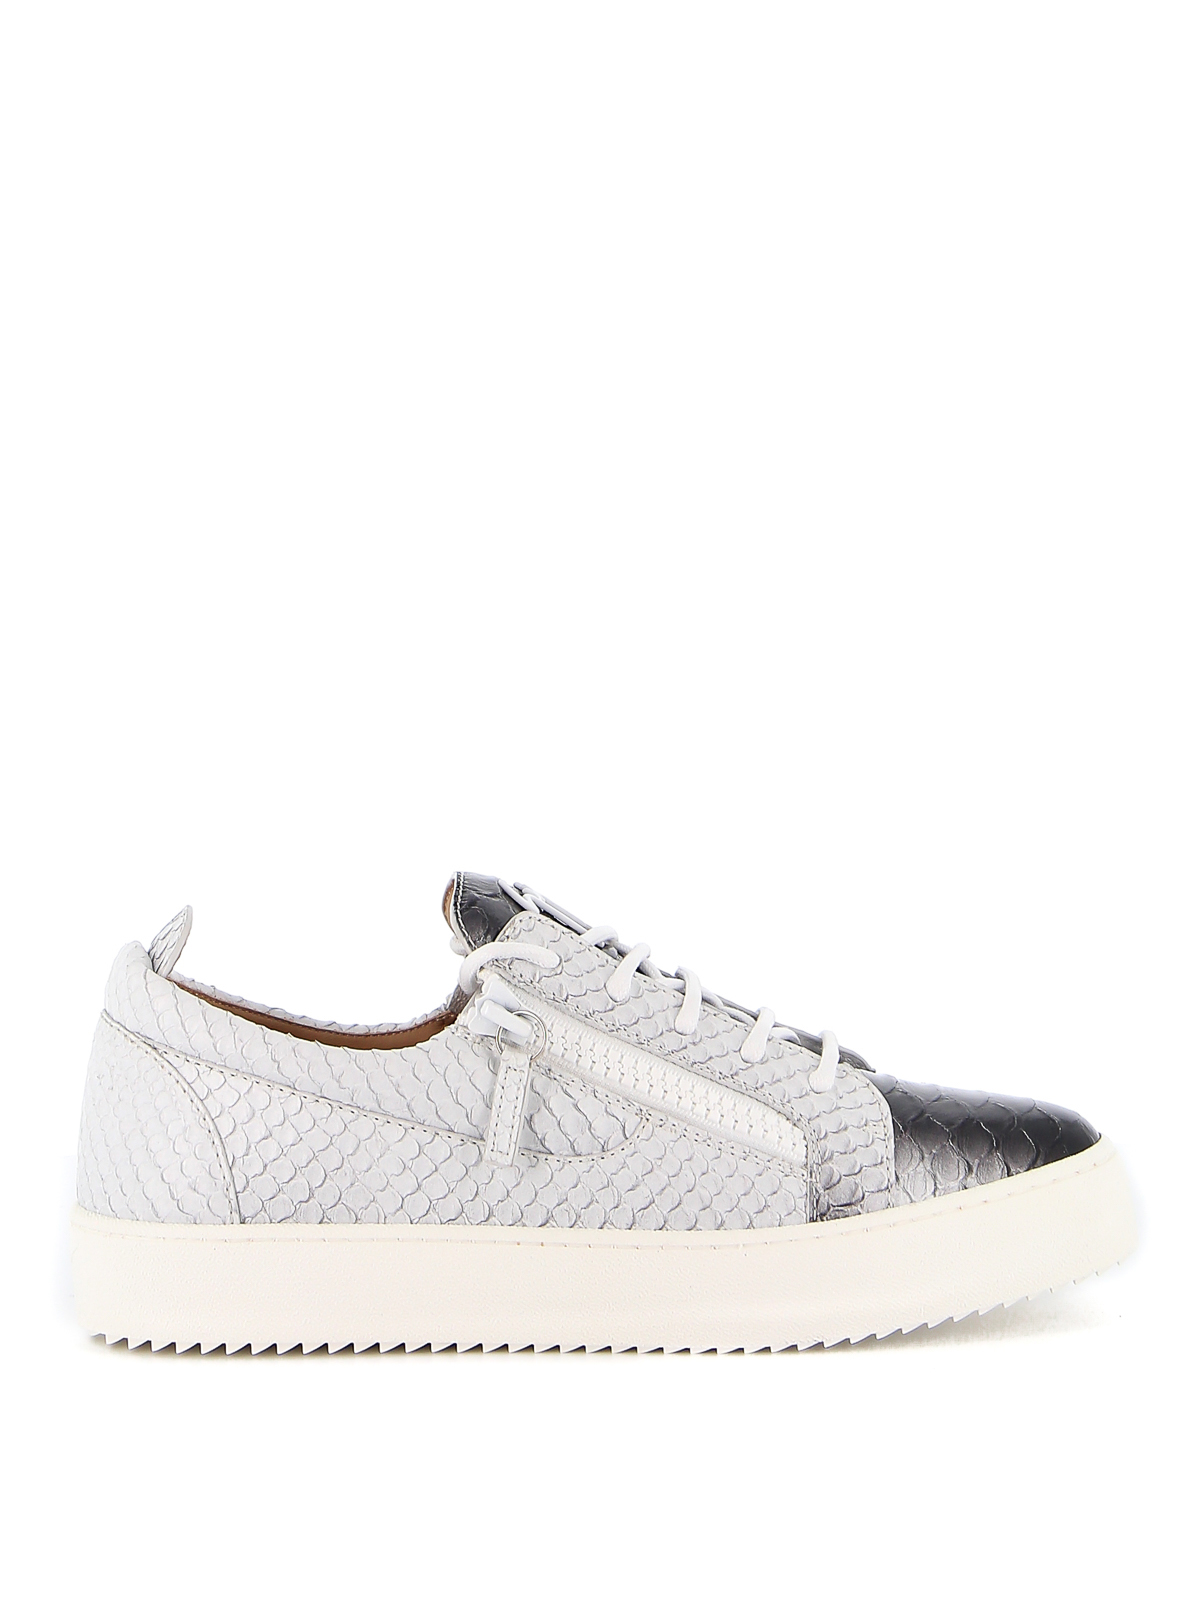 Giuseppe Zanotti MAY LONDON SCALES EFFECT LEATHER SNEAKERS